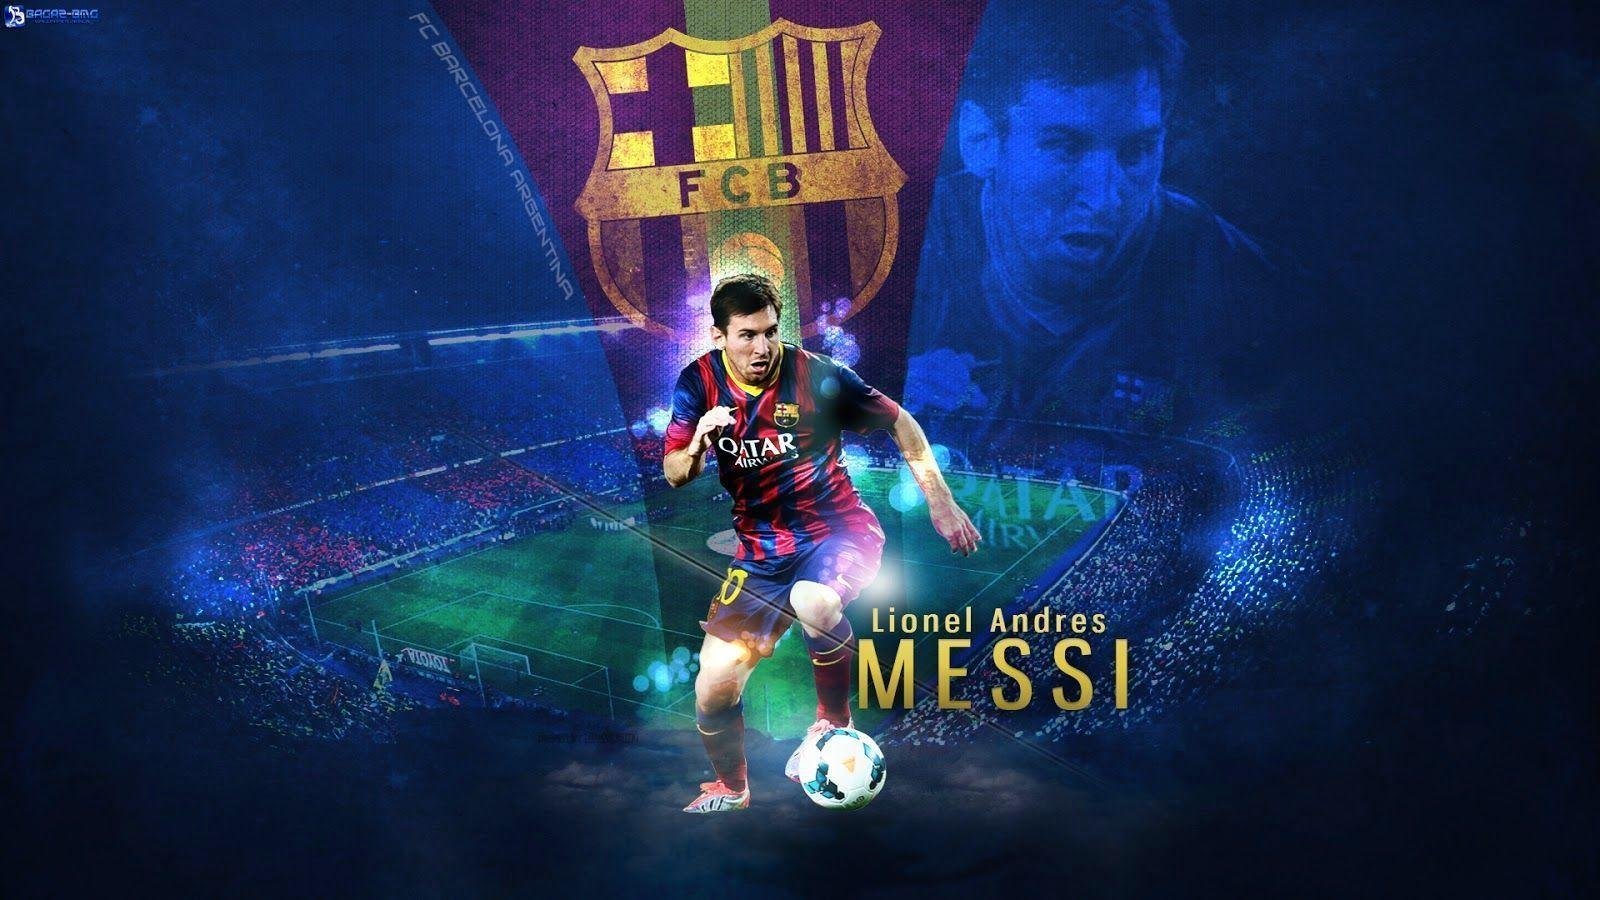 Wallpapers HD Corner: Lionel Messi Fc Barcelona HD Wallpapers 2015